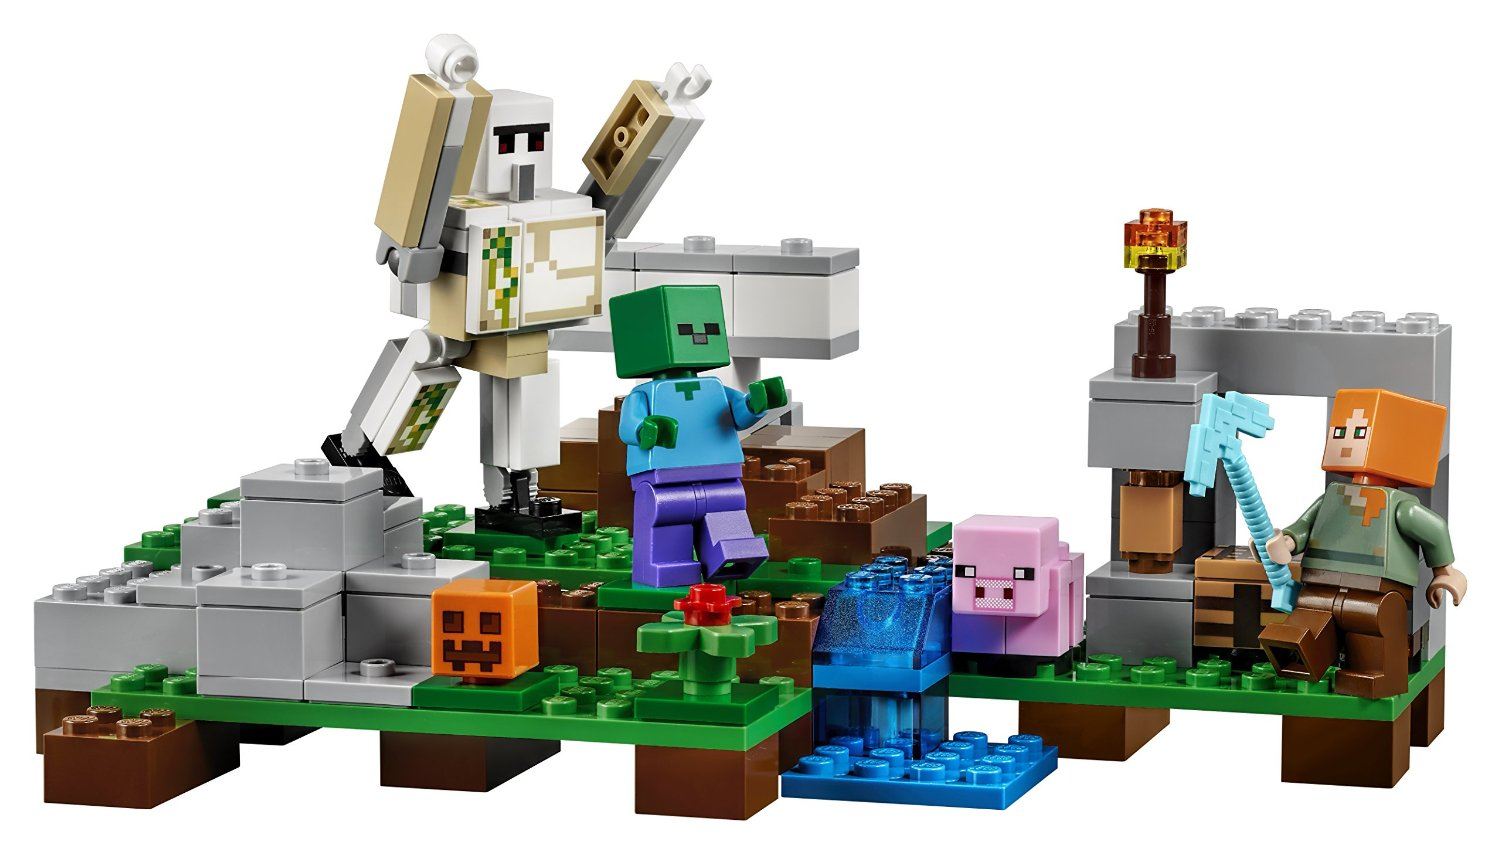 21123 The Iron Golem Bricknowlogy Build Your Mind Lego 21132 Minecraft Jungle Temple